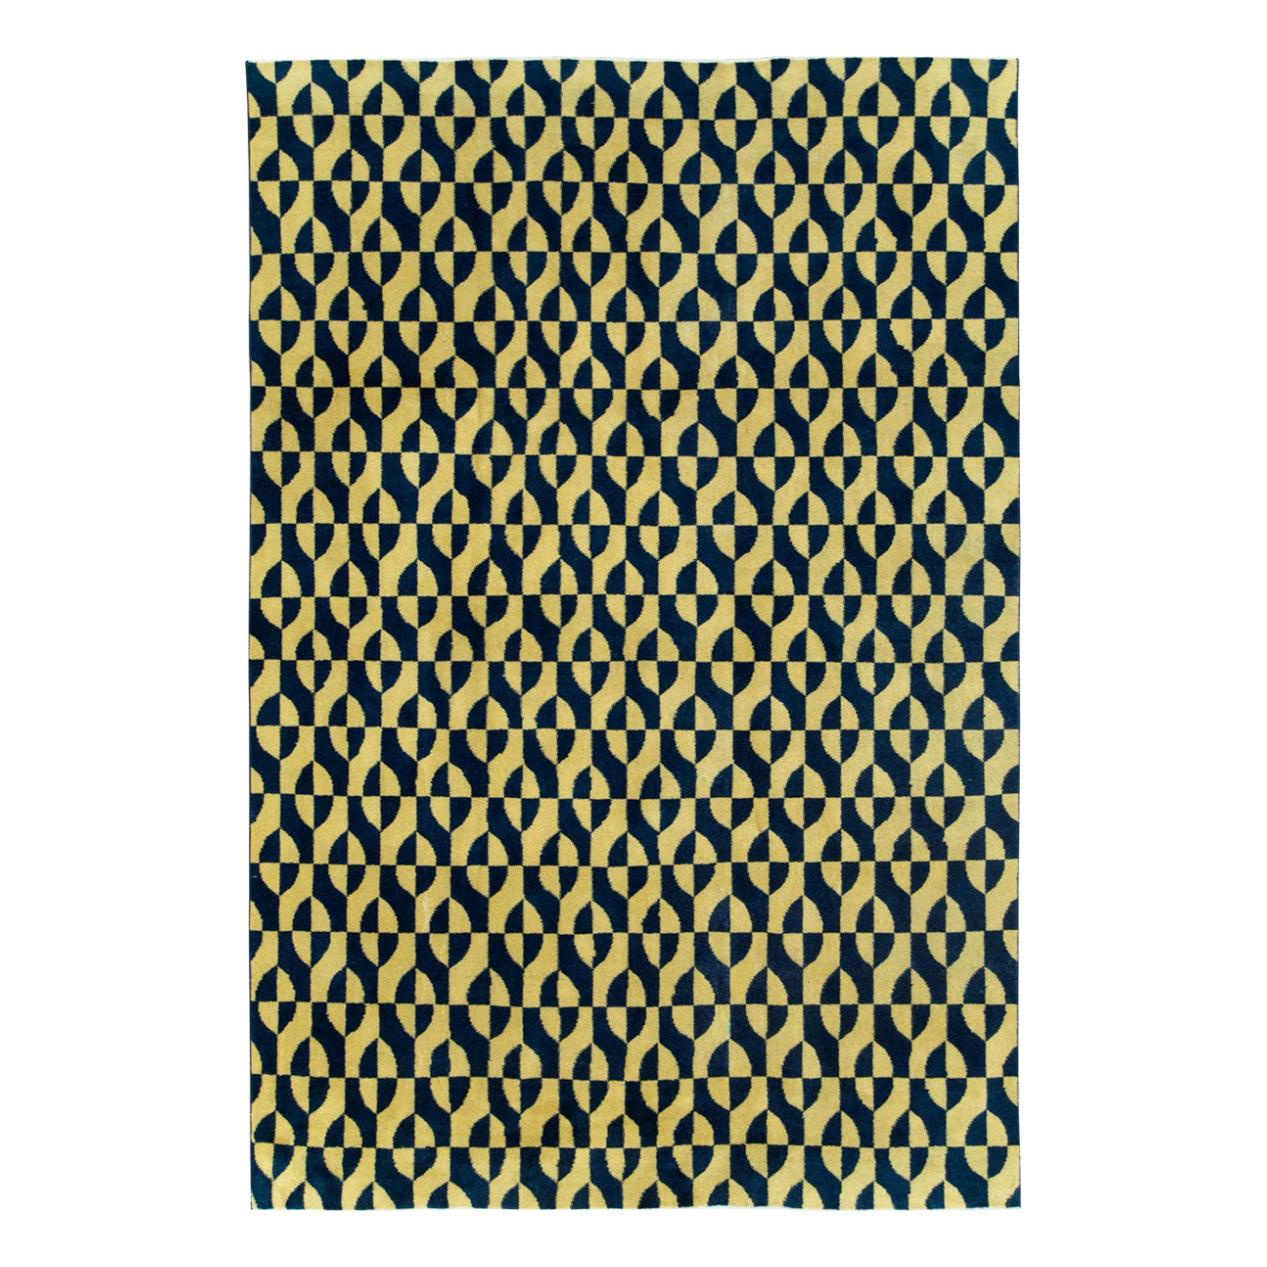 Mid-20th Century Handmade Turkish Art Deco Accent Rug in Yellow and Blue